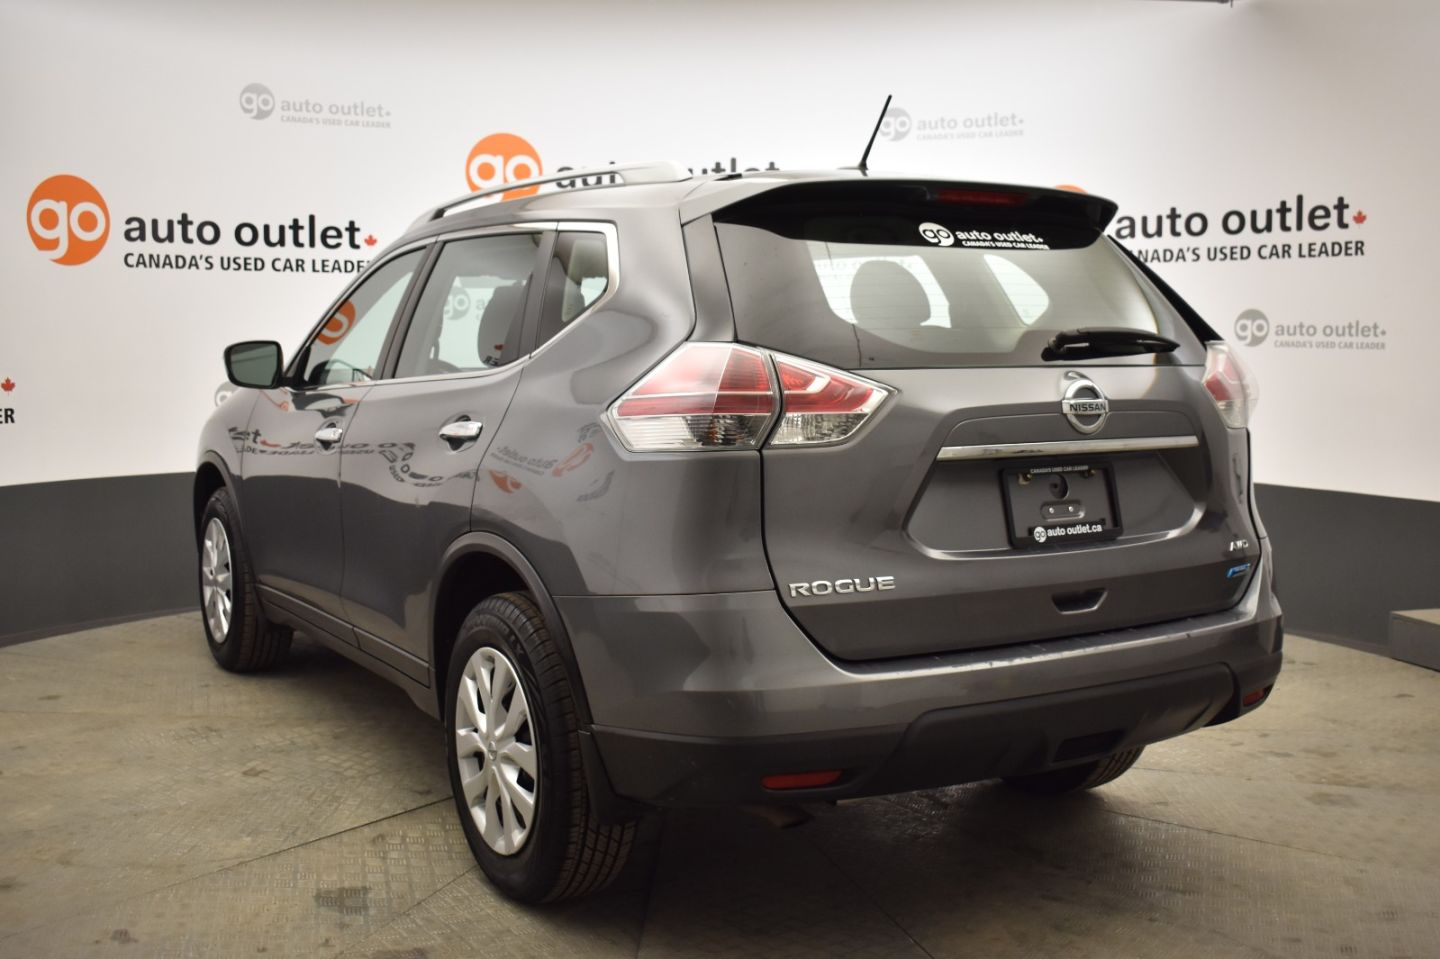 2015 Nissan Rogue S for sale in Leduc, Alberta